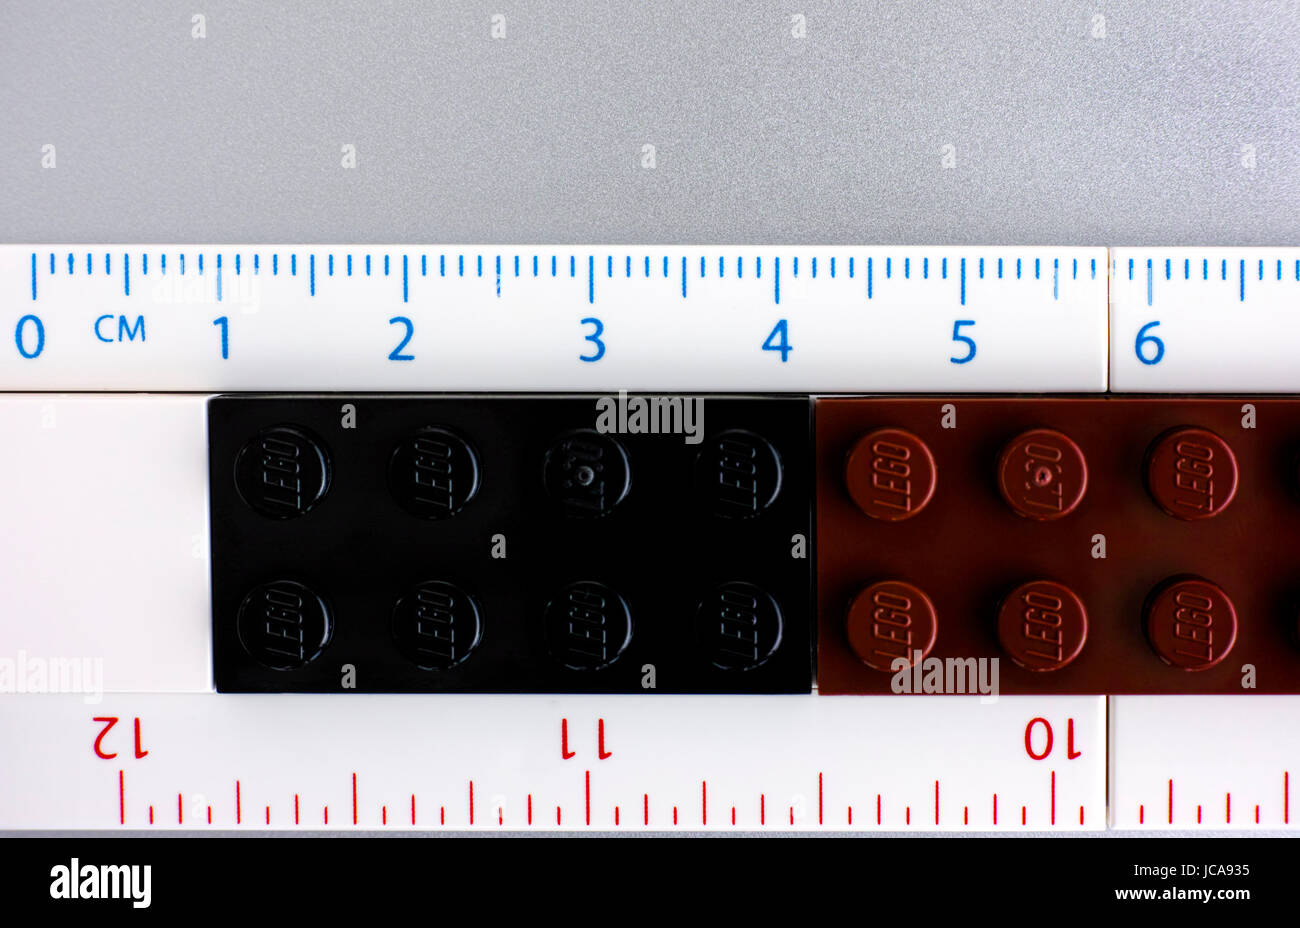 Tambov russian federation may 20 2017 lego ruler with stock tambov russian federation may 20 2017 lego ruler with centimeters inches and buycottarizona Image collections